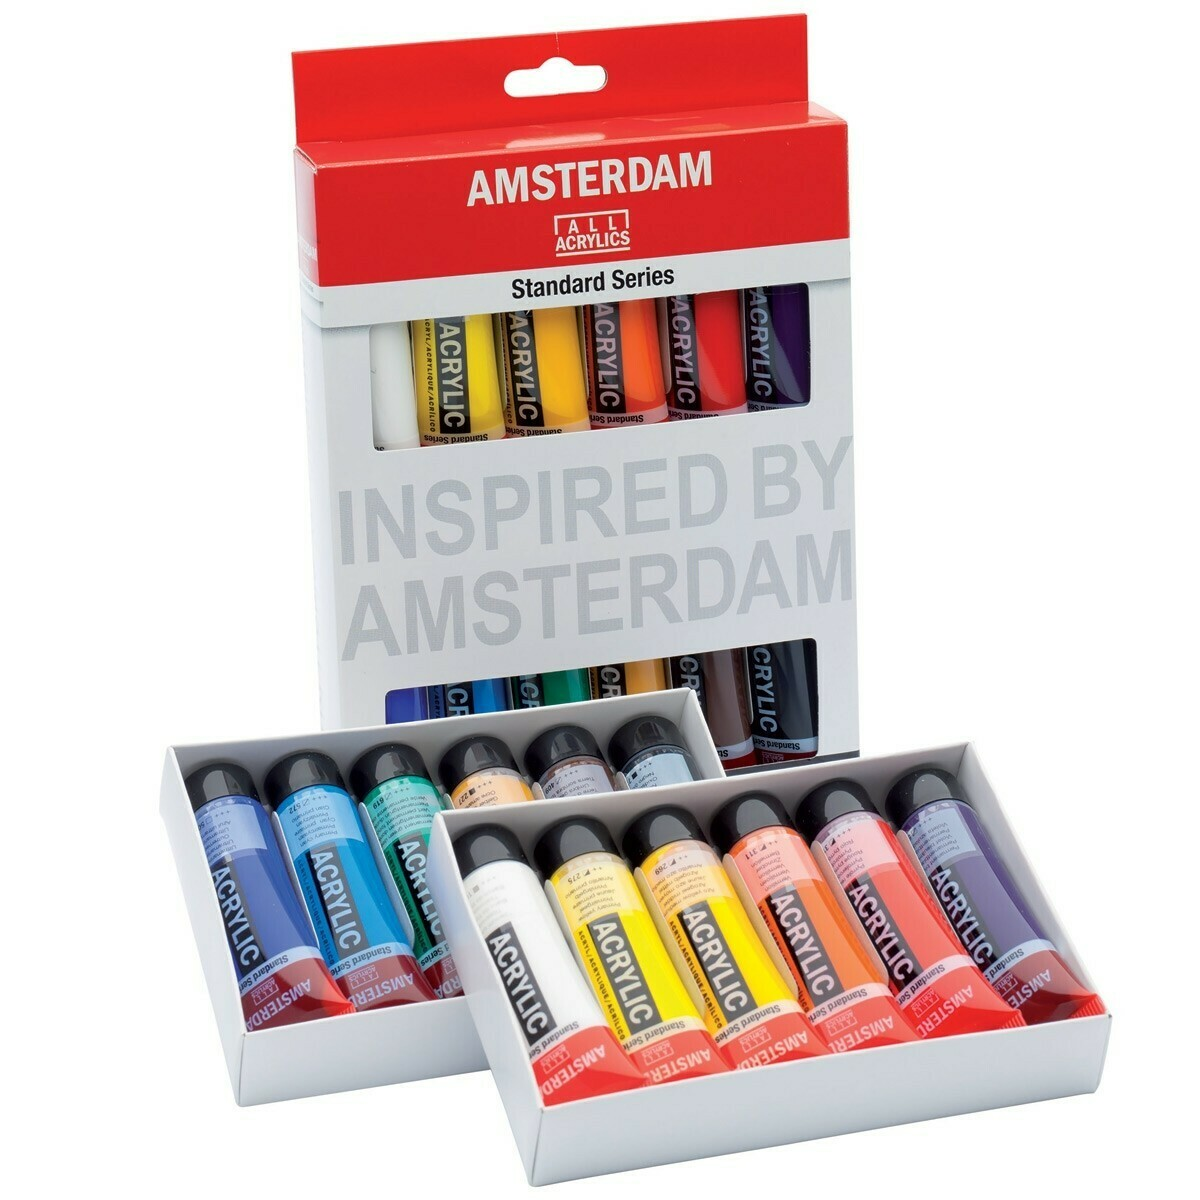 Amsterdam; Amsterdam Standard Series Acrylic Paint Sets, 12 Color Set